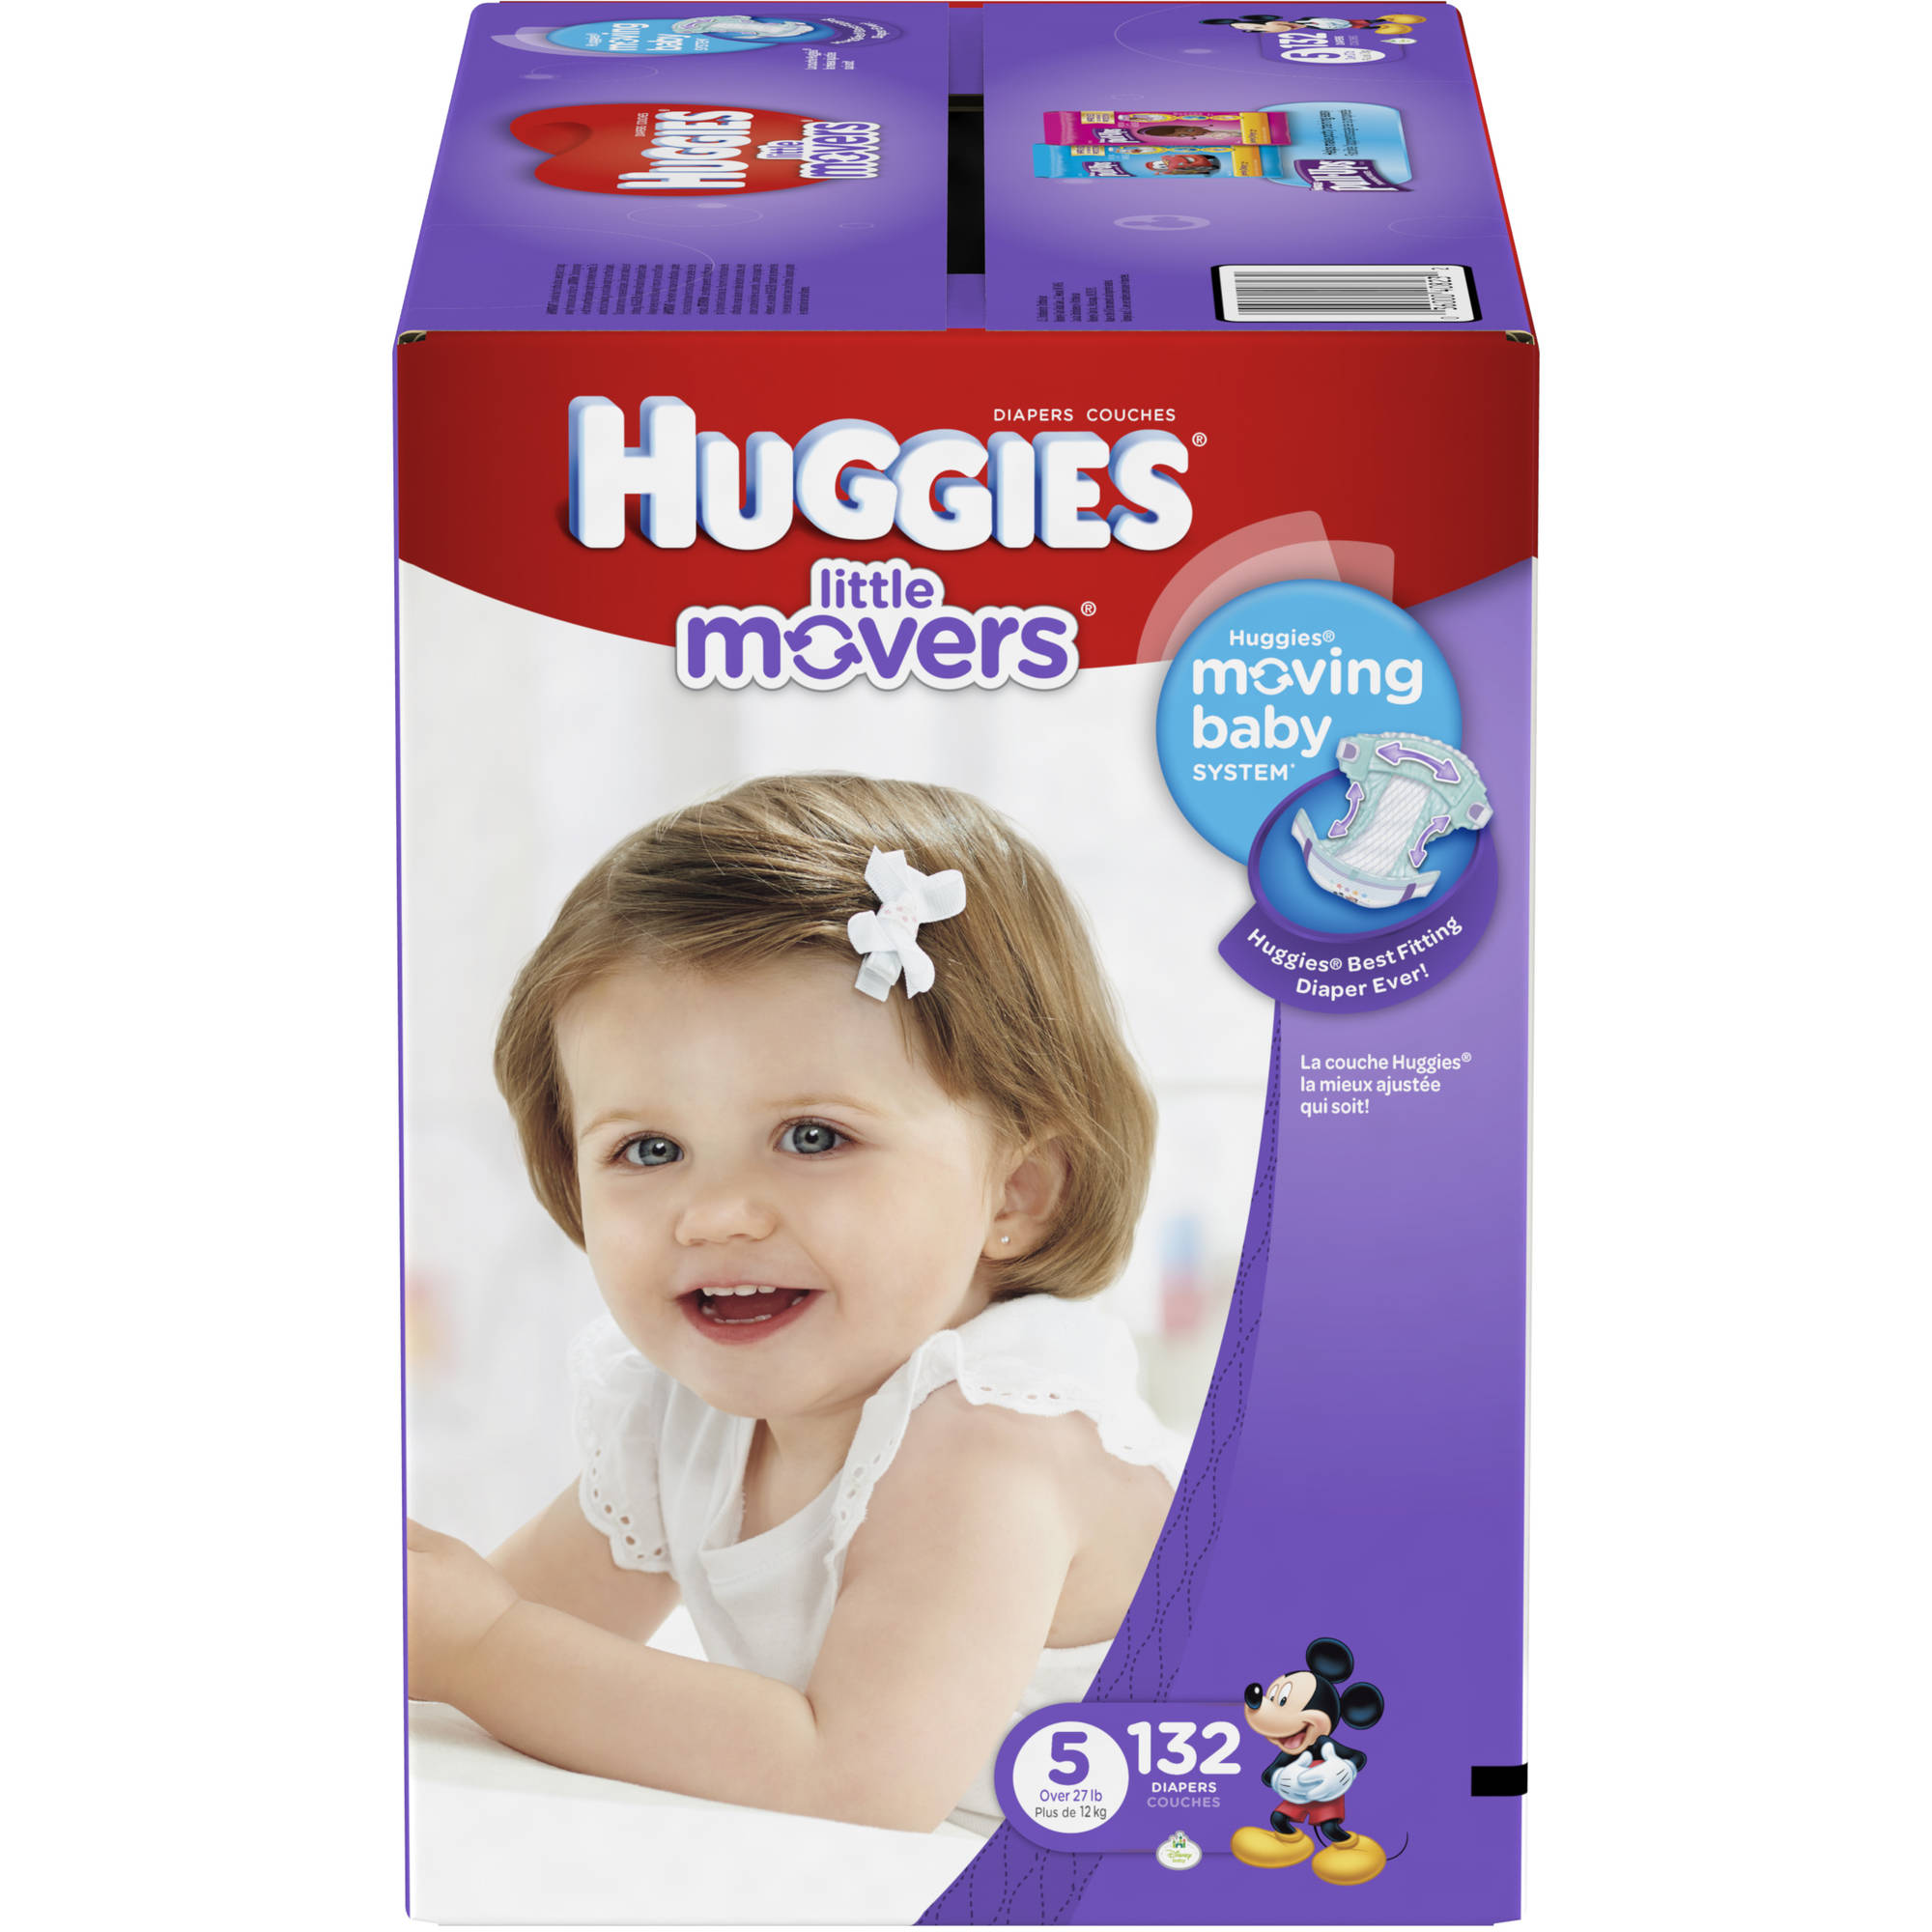 Huggies Little Movers Diapers, Size 5 (Choose Diaper Count)